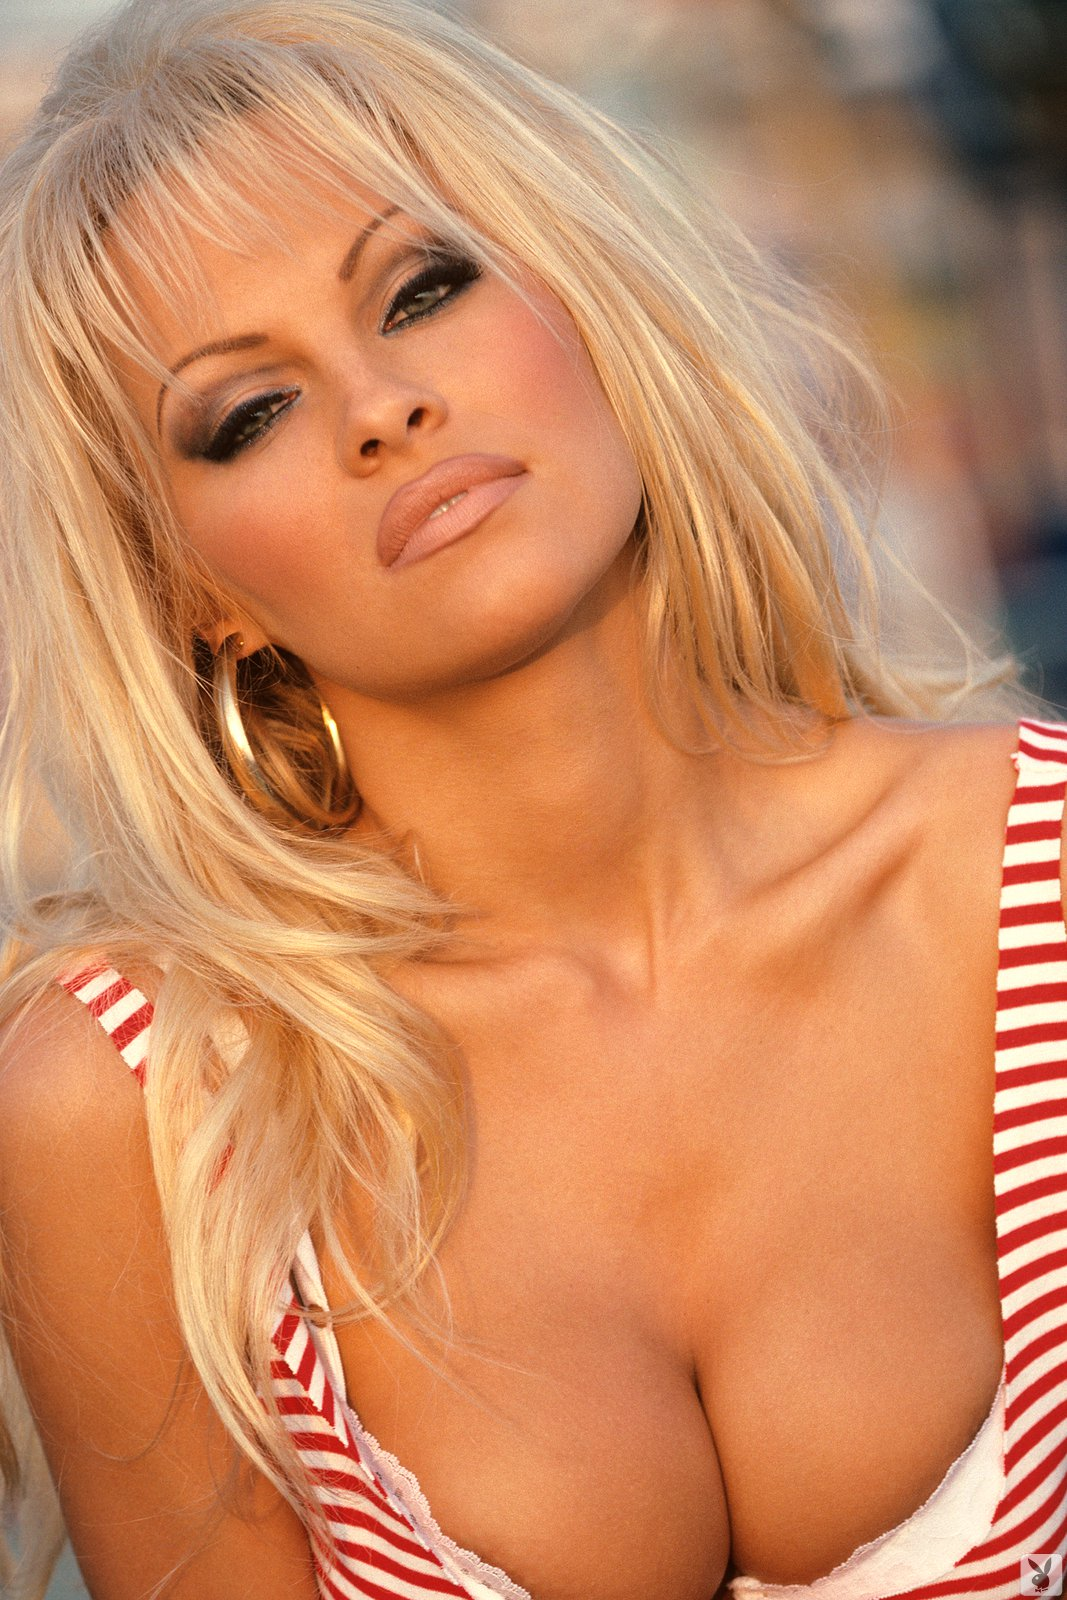 pamela anderson u0026 39 s sexiest photos  top 10 poems on life